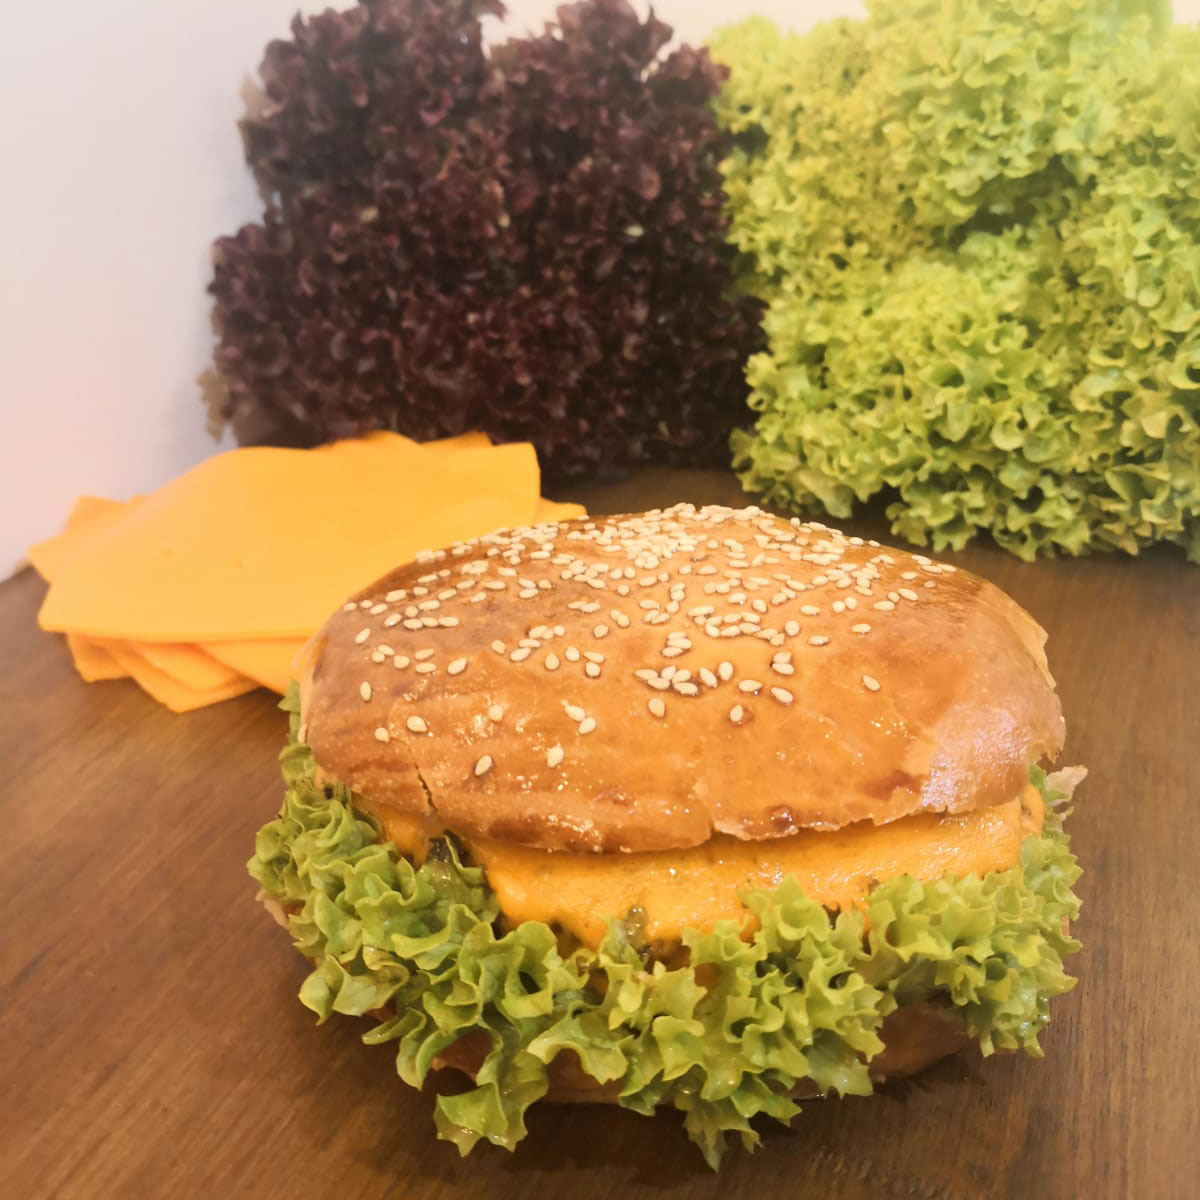 MENU MAXI CHEESEBURGER